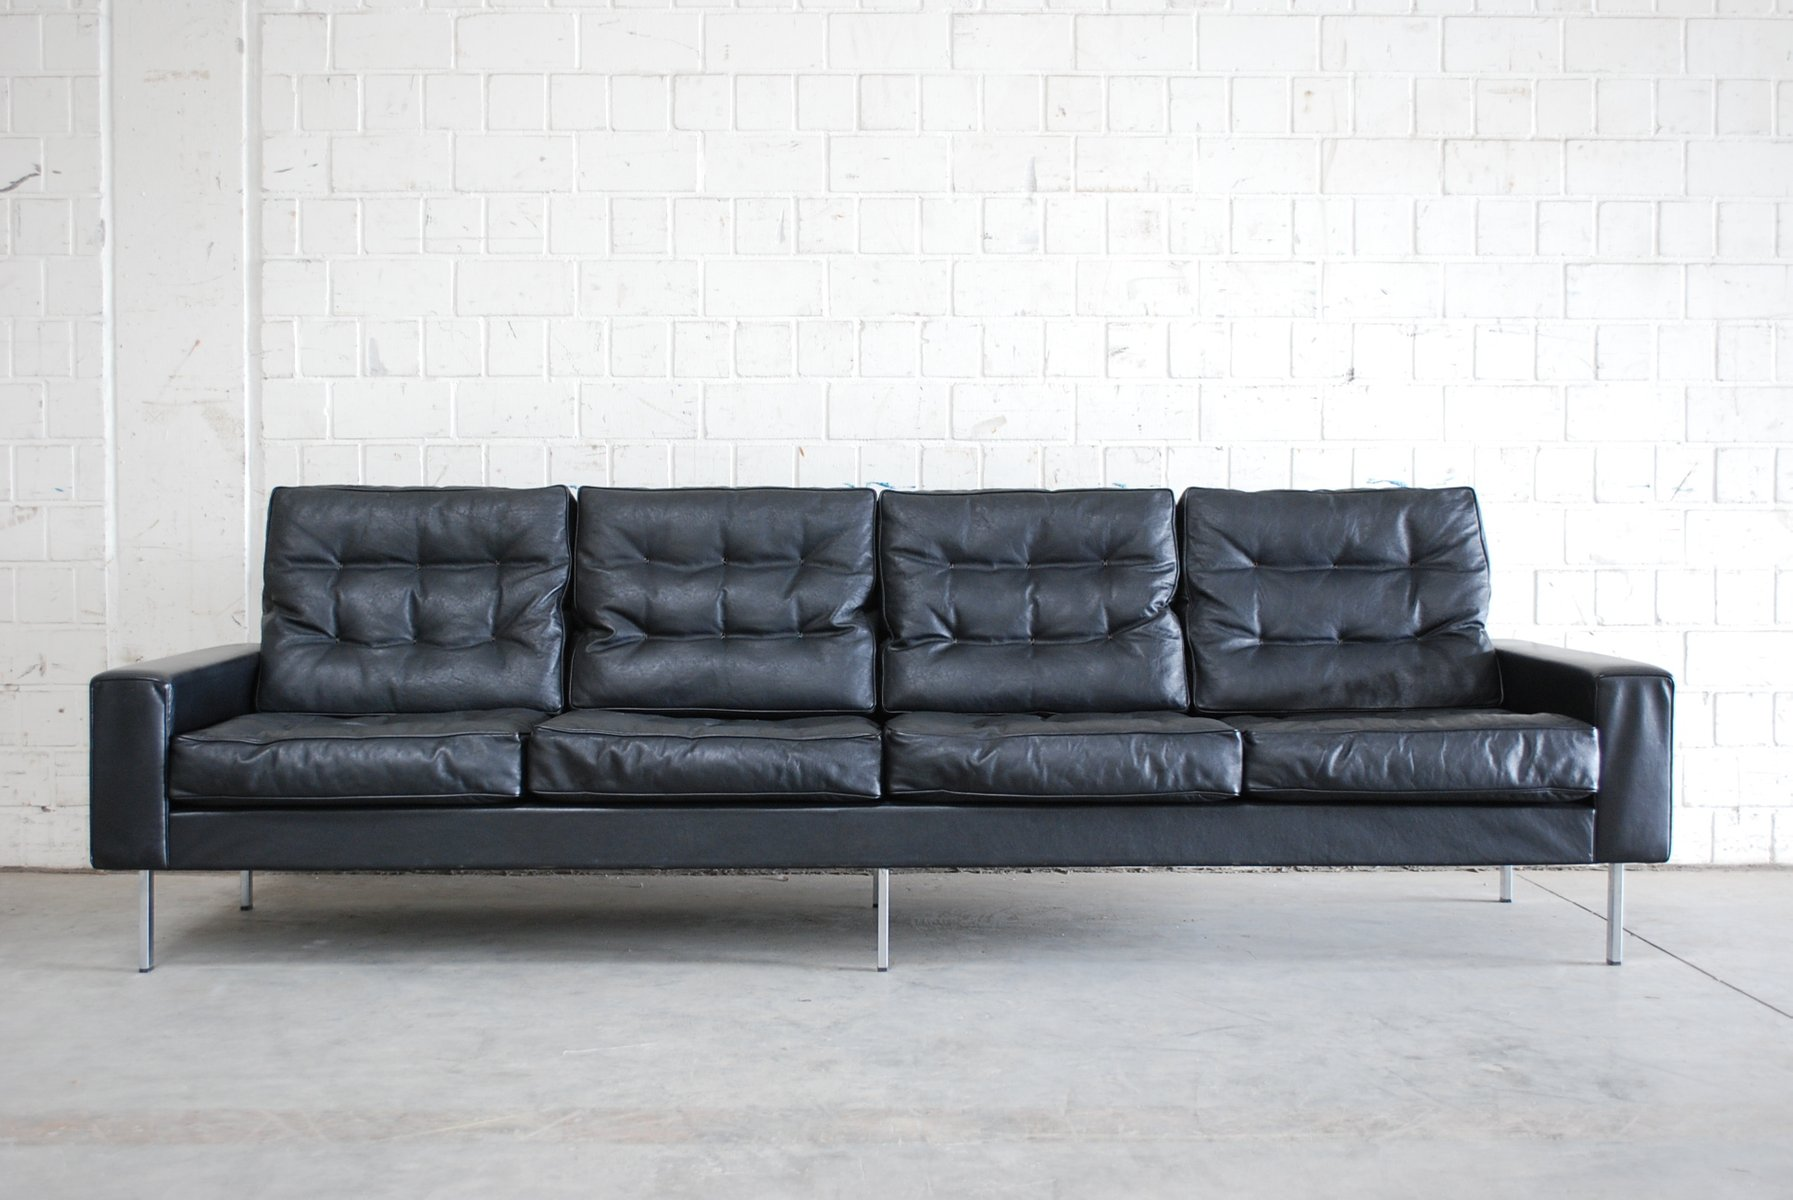 Vintage black leather 4 seater sofa from de sede 1967 for for Sofa 8 seater